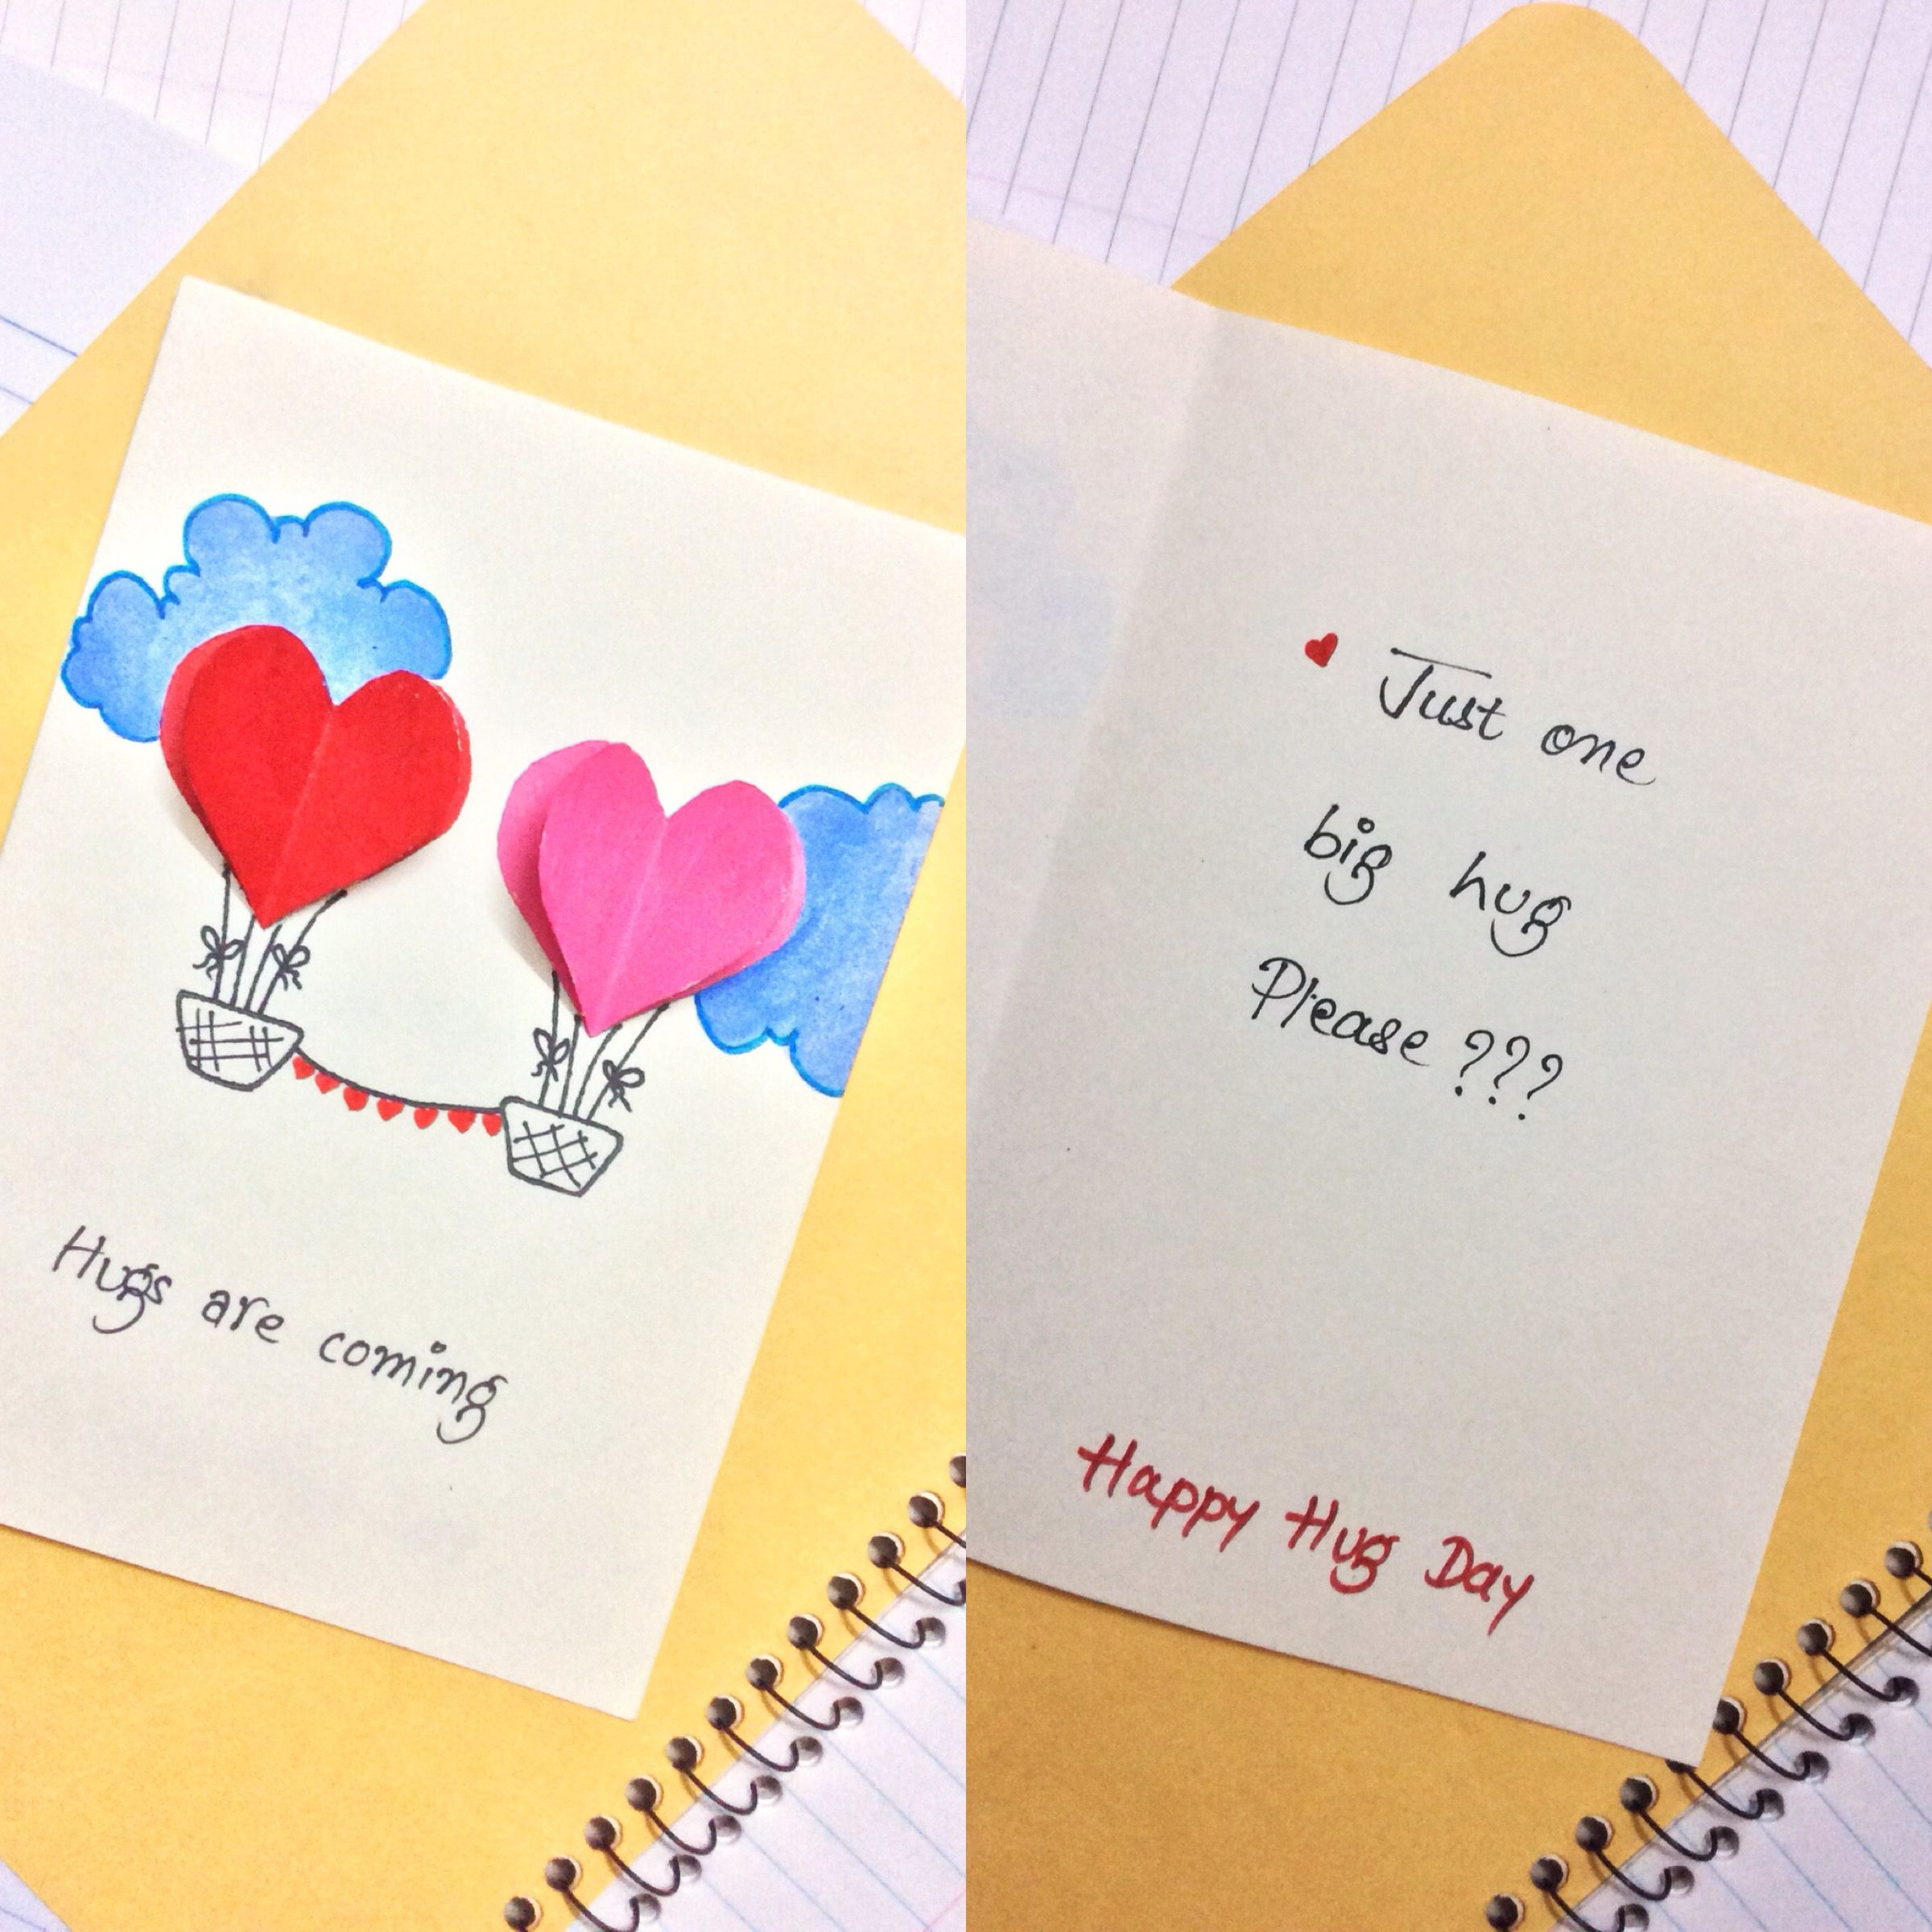 Propose day card valentine day weekly cards making DIY crafts for ...